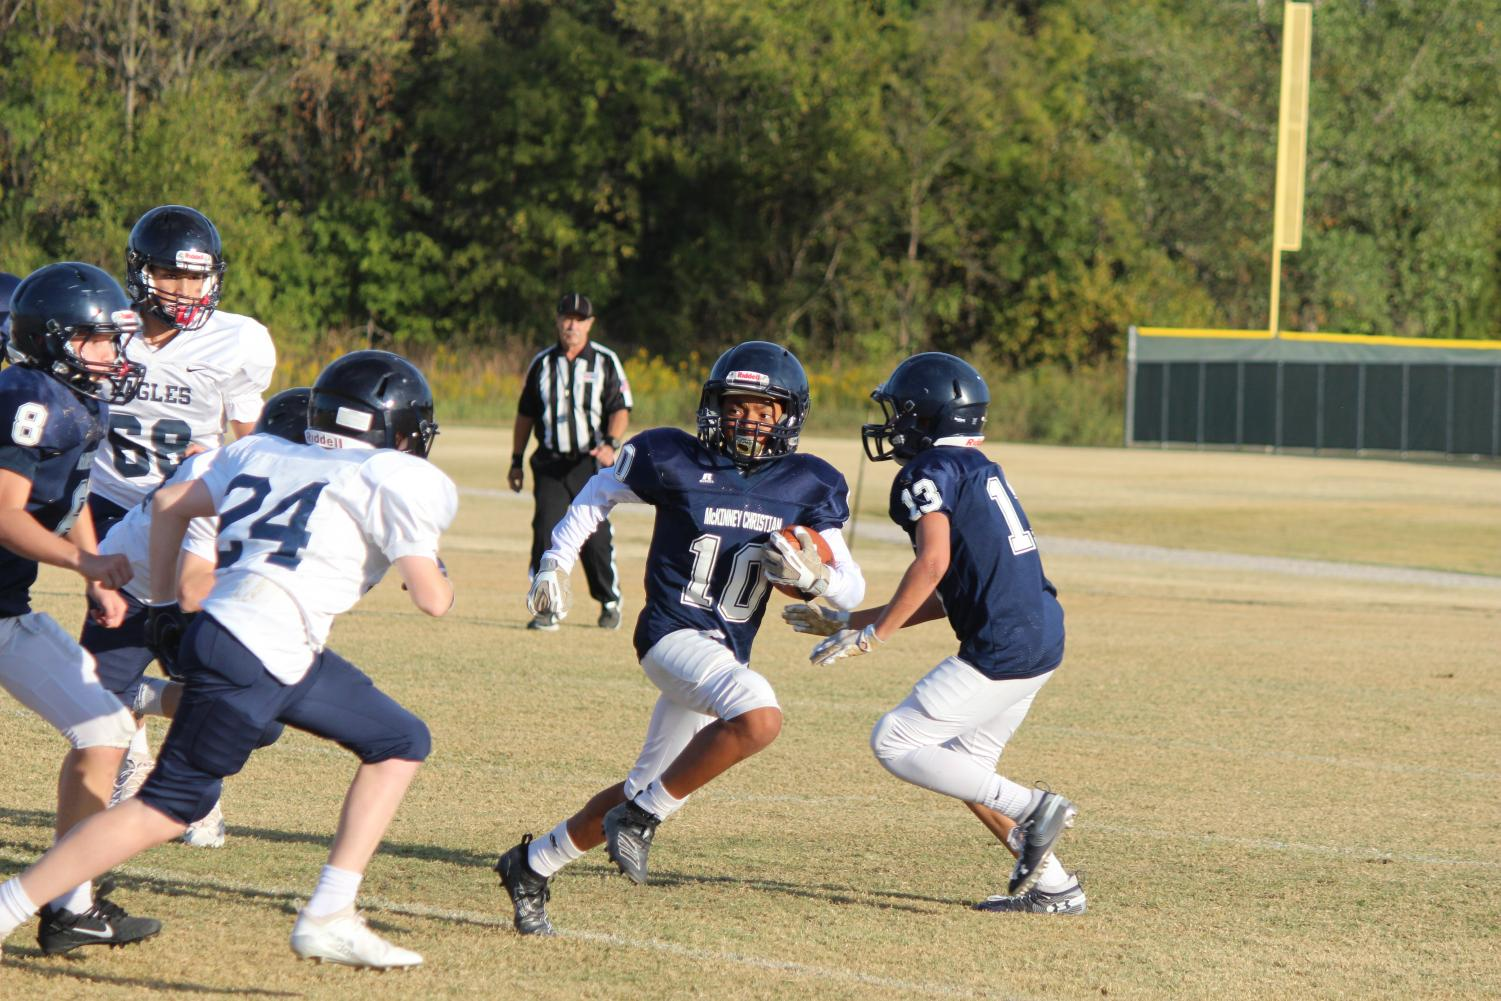 Seventh+grader+Aaron+Grant+turns+the+ball+around+the+corner+to+gain+yards+for+the+Mustangs+against+ESD.